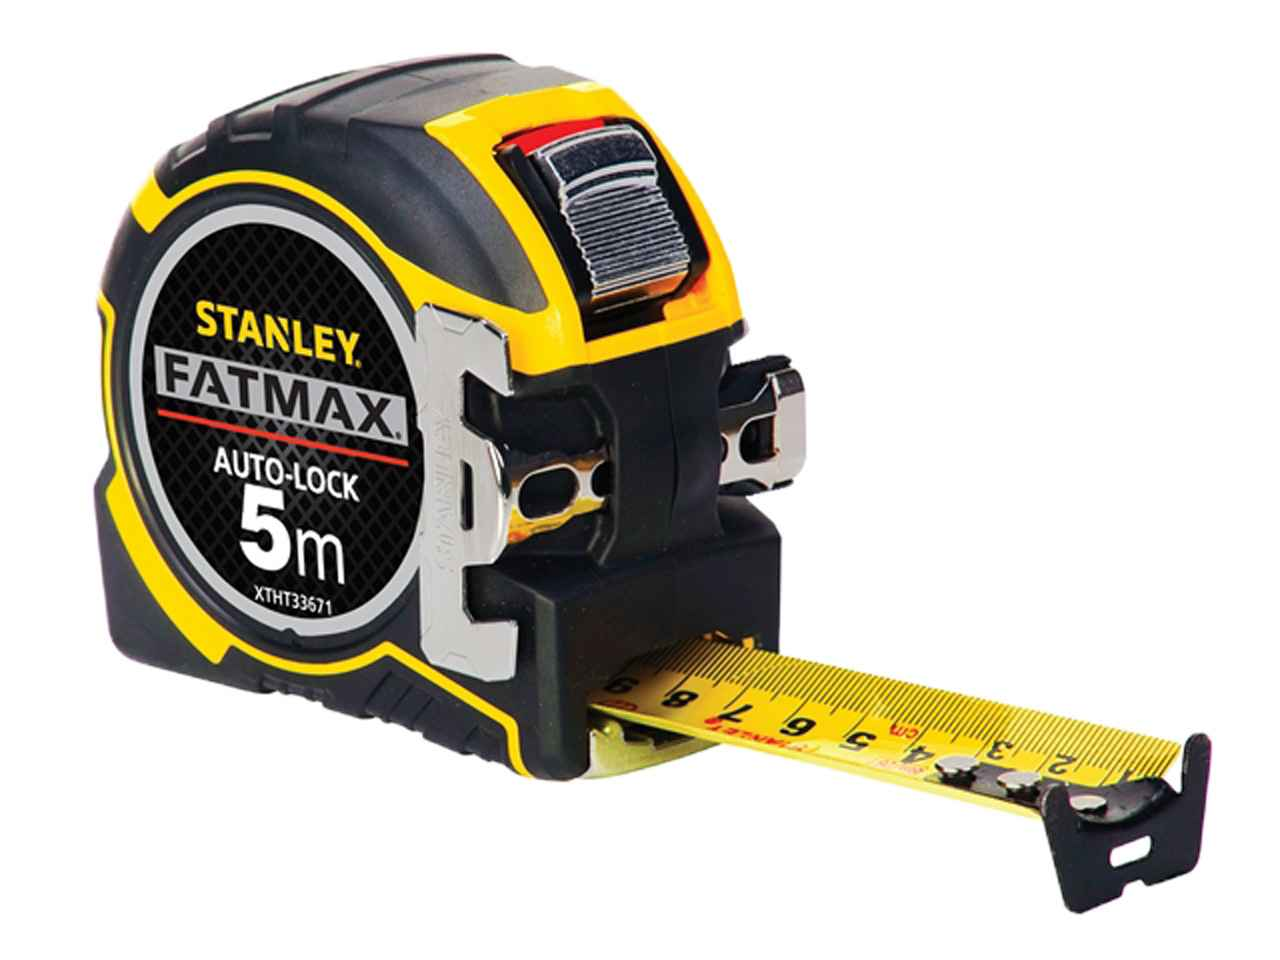 stanley sta033671 5m fatmax autolock tape width 32mm. Black Bedroom Furniture Sets. Home Design Ideas